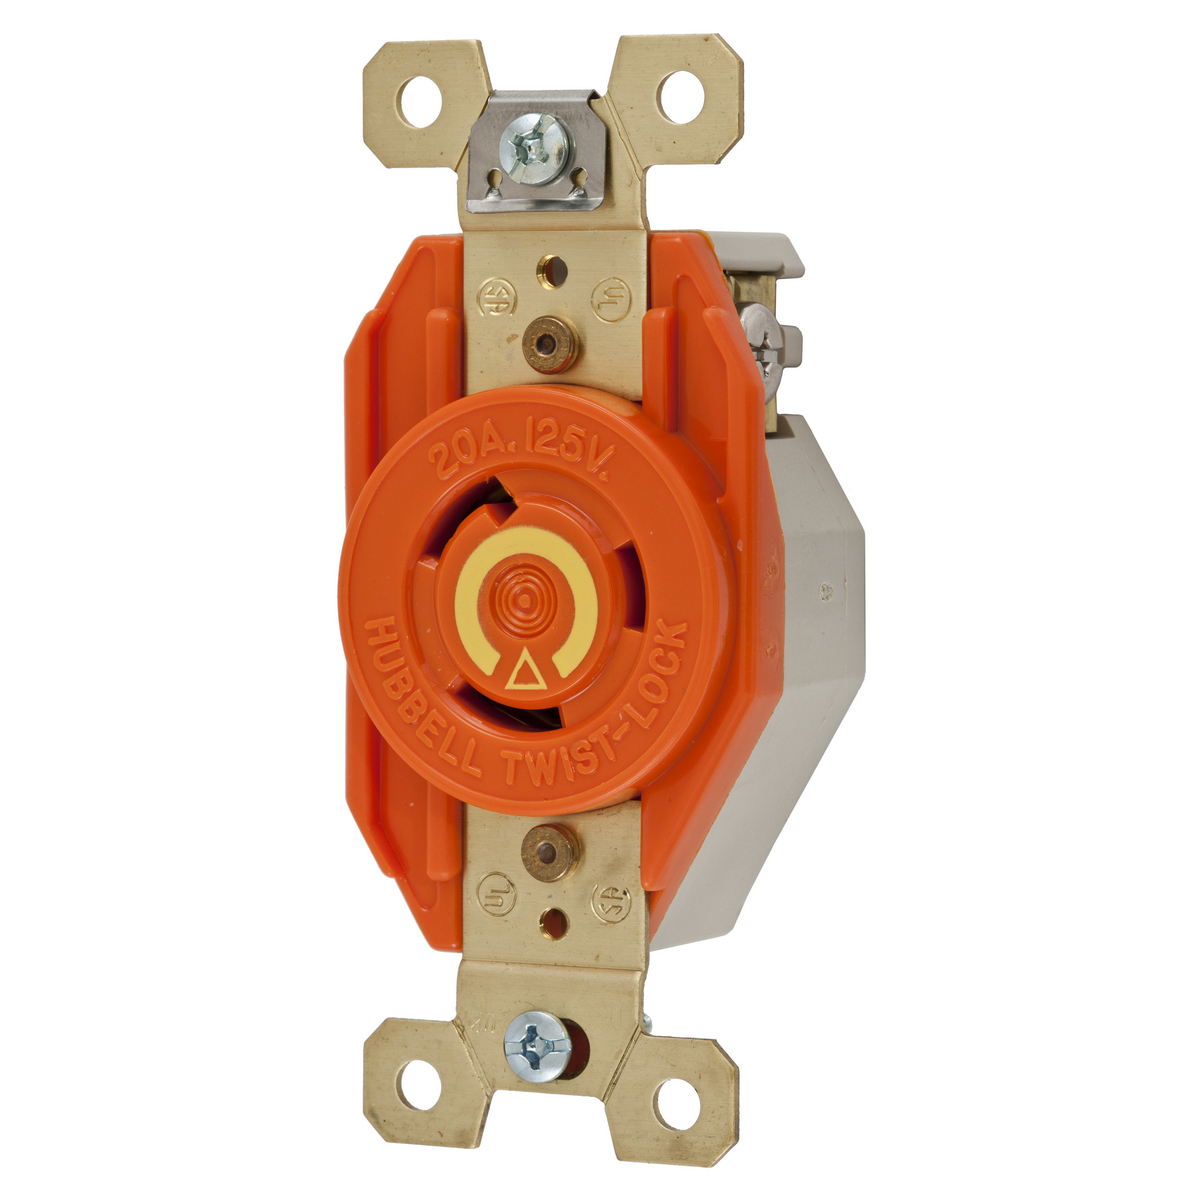 HUBBELL IG2410A TWIST-LOCK RECEPTACLE 3P 4W ISOLATED GROUND 20A